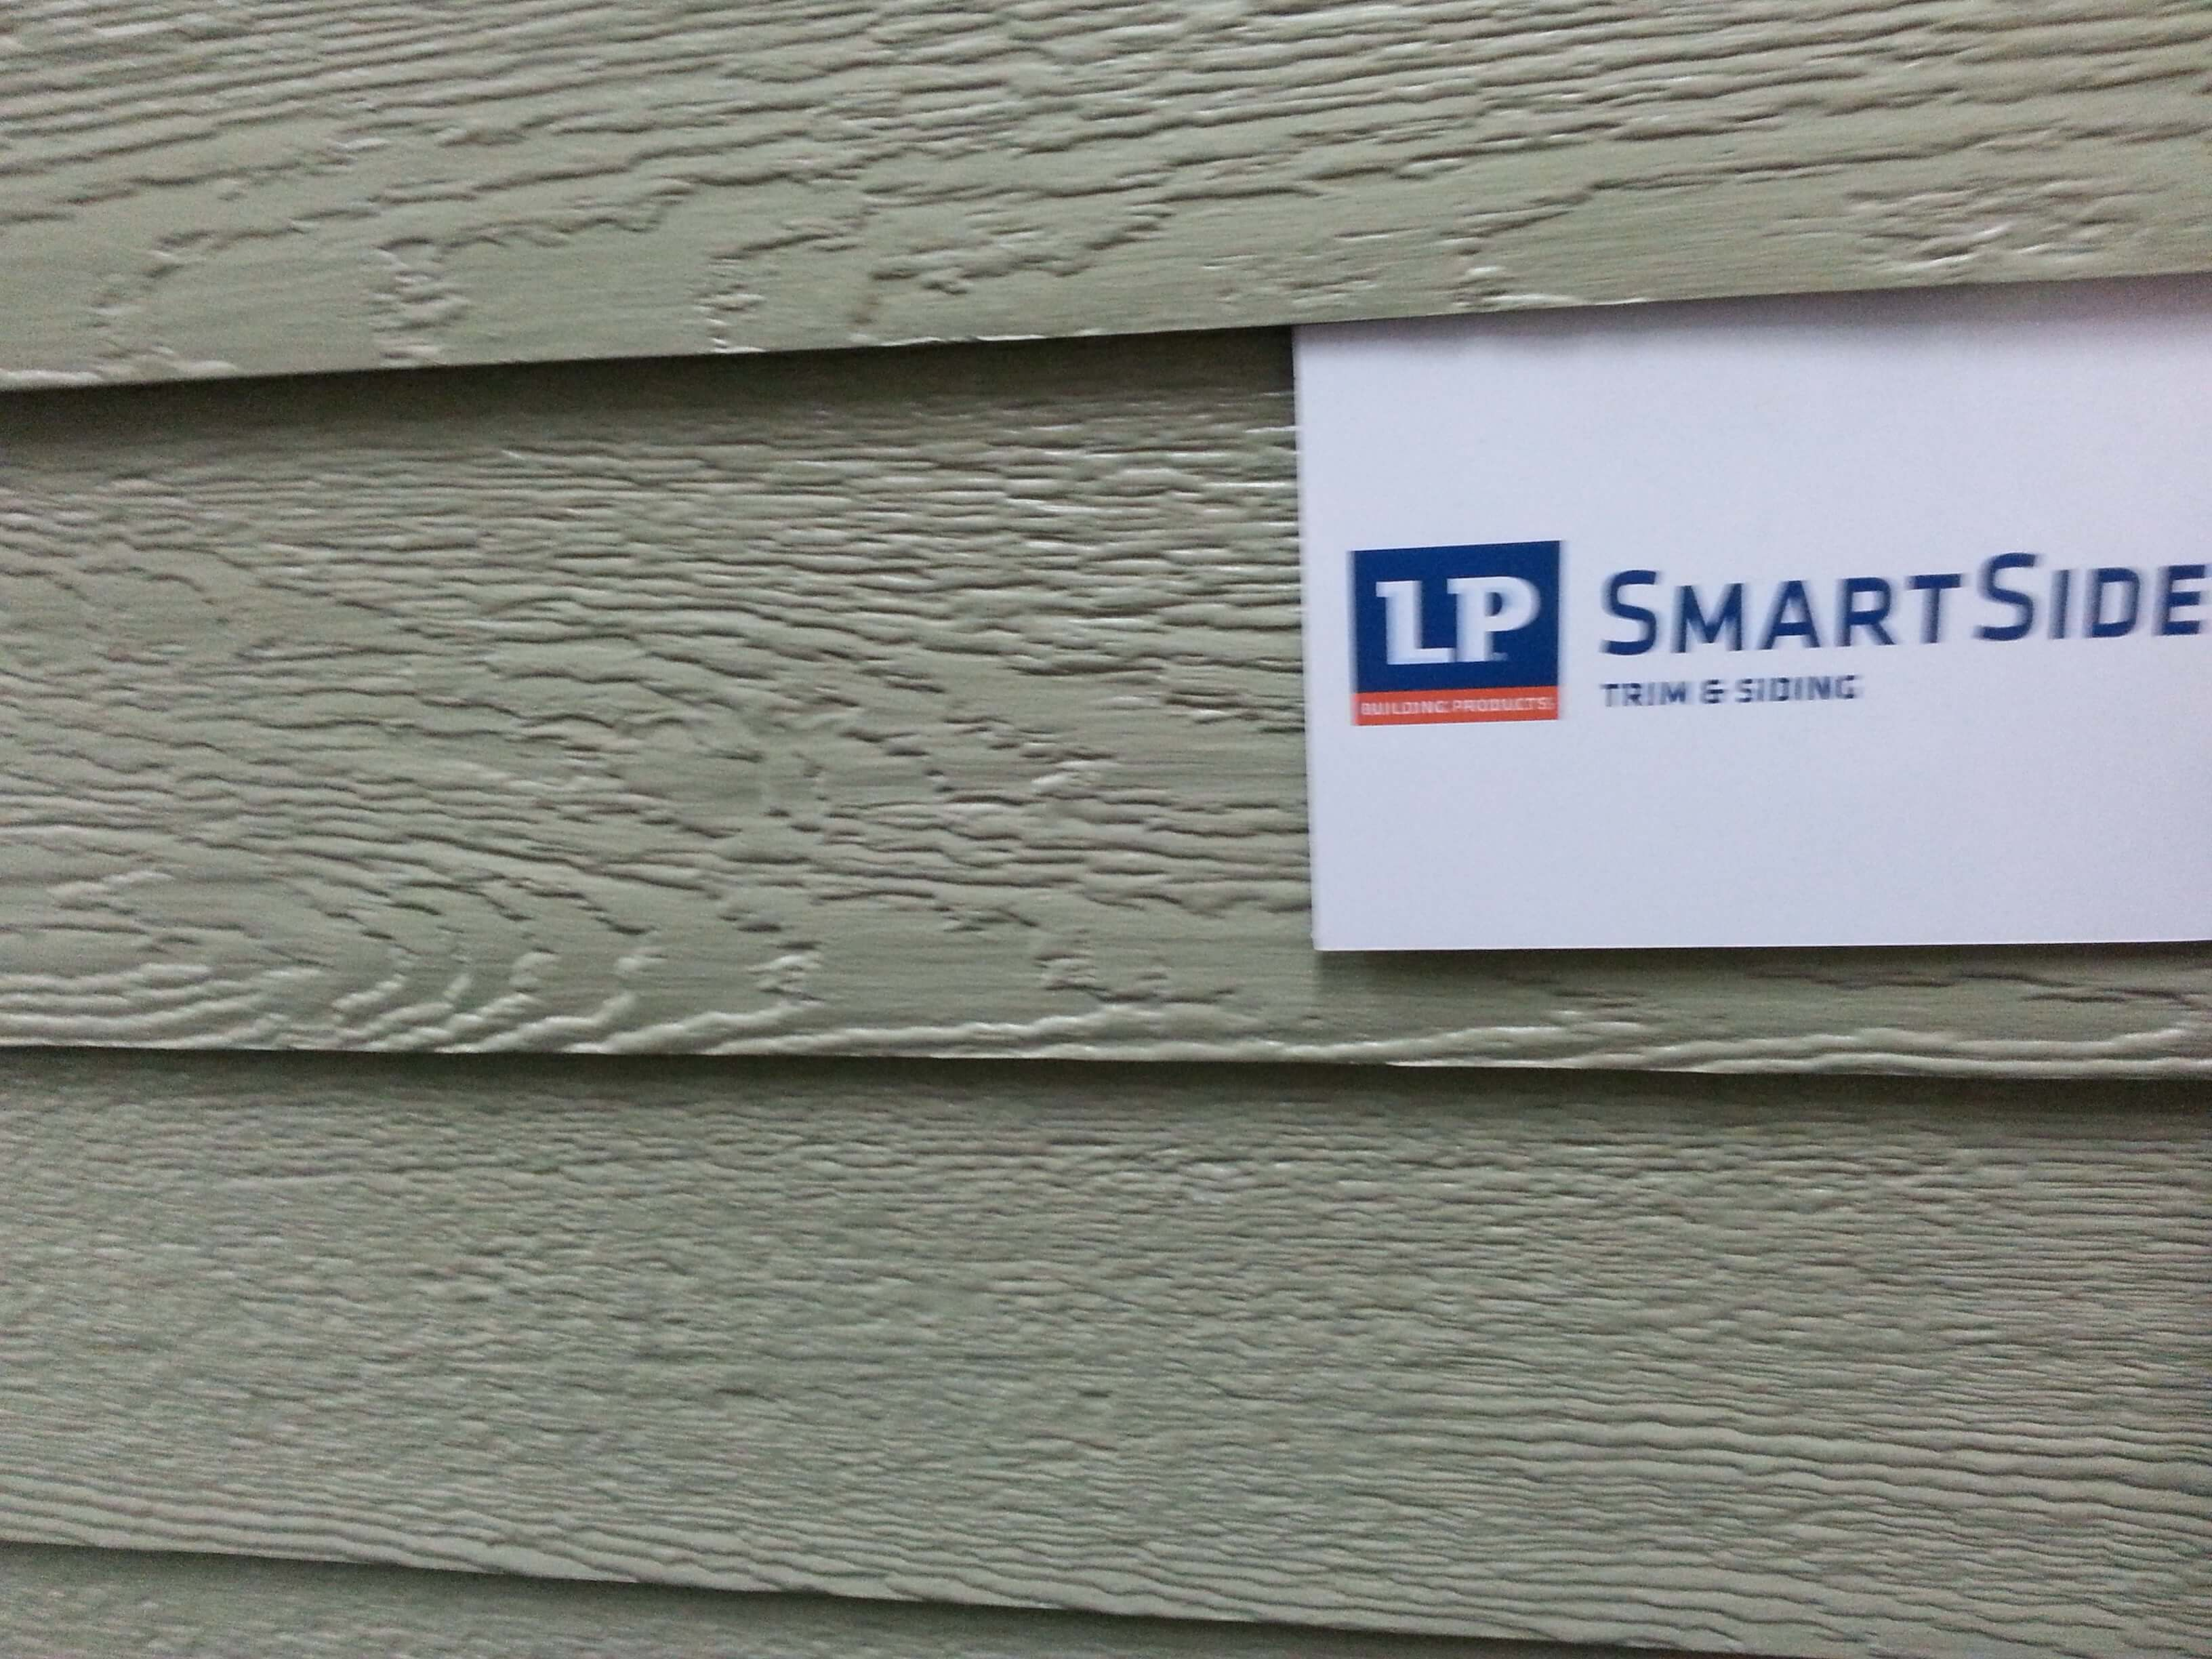 Lp smartside gallery for Wood siding vs hardiplank